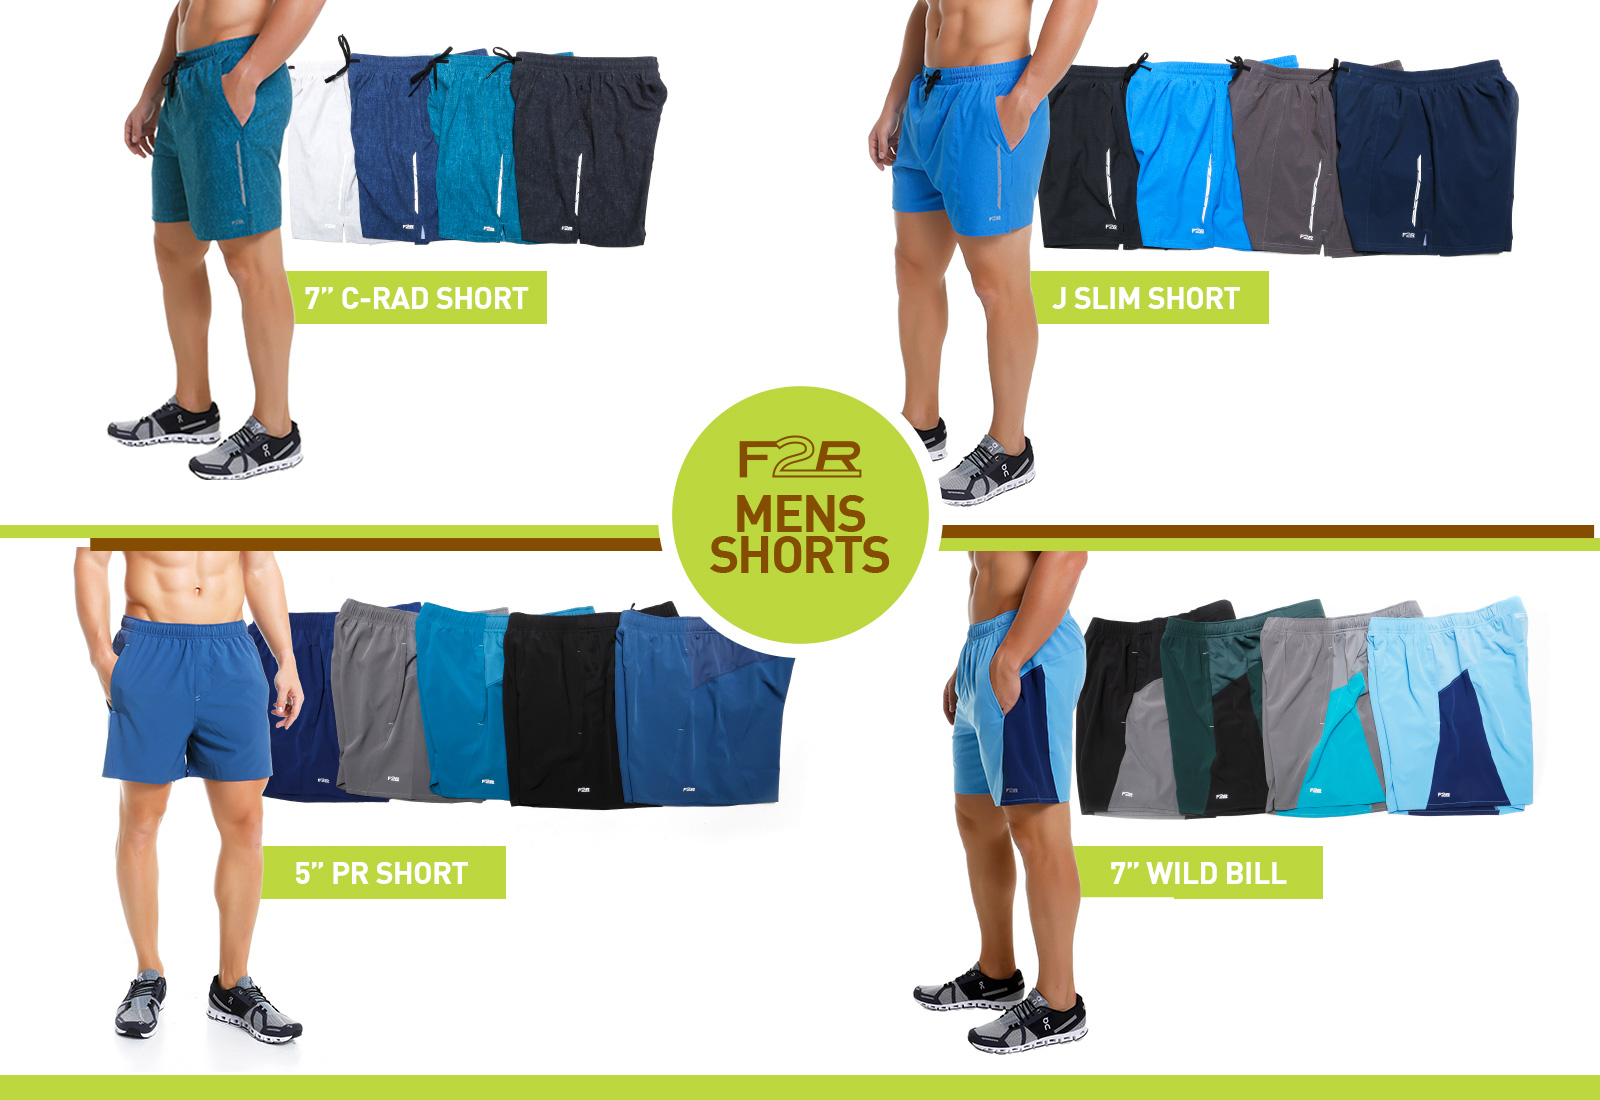 Fit2Run Offers High-Performance, Comfortable Running Shorts at a Great Price Point